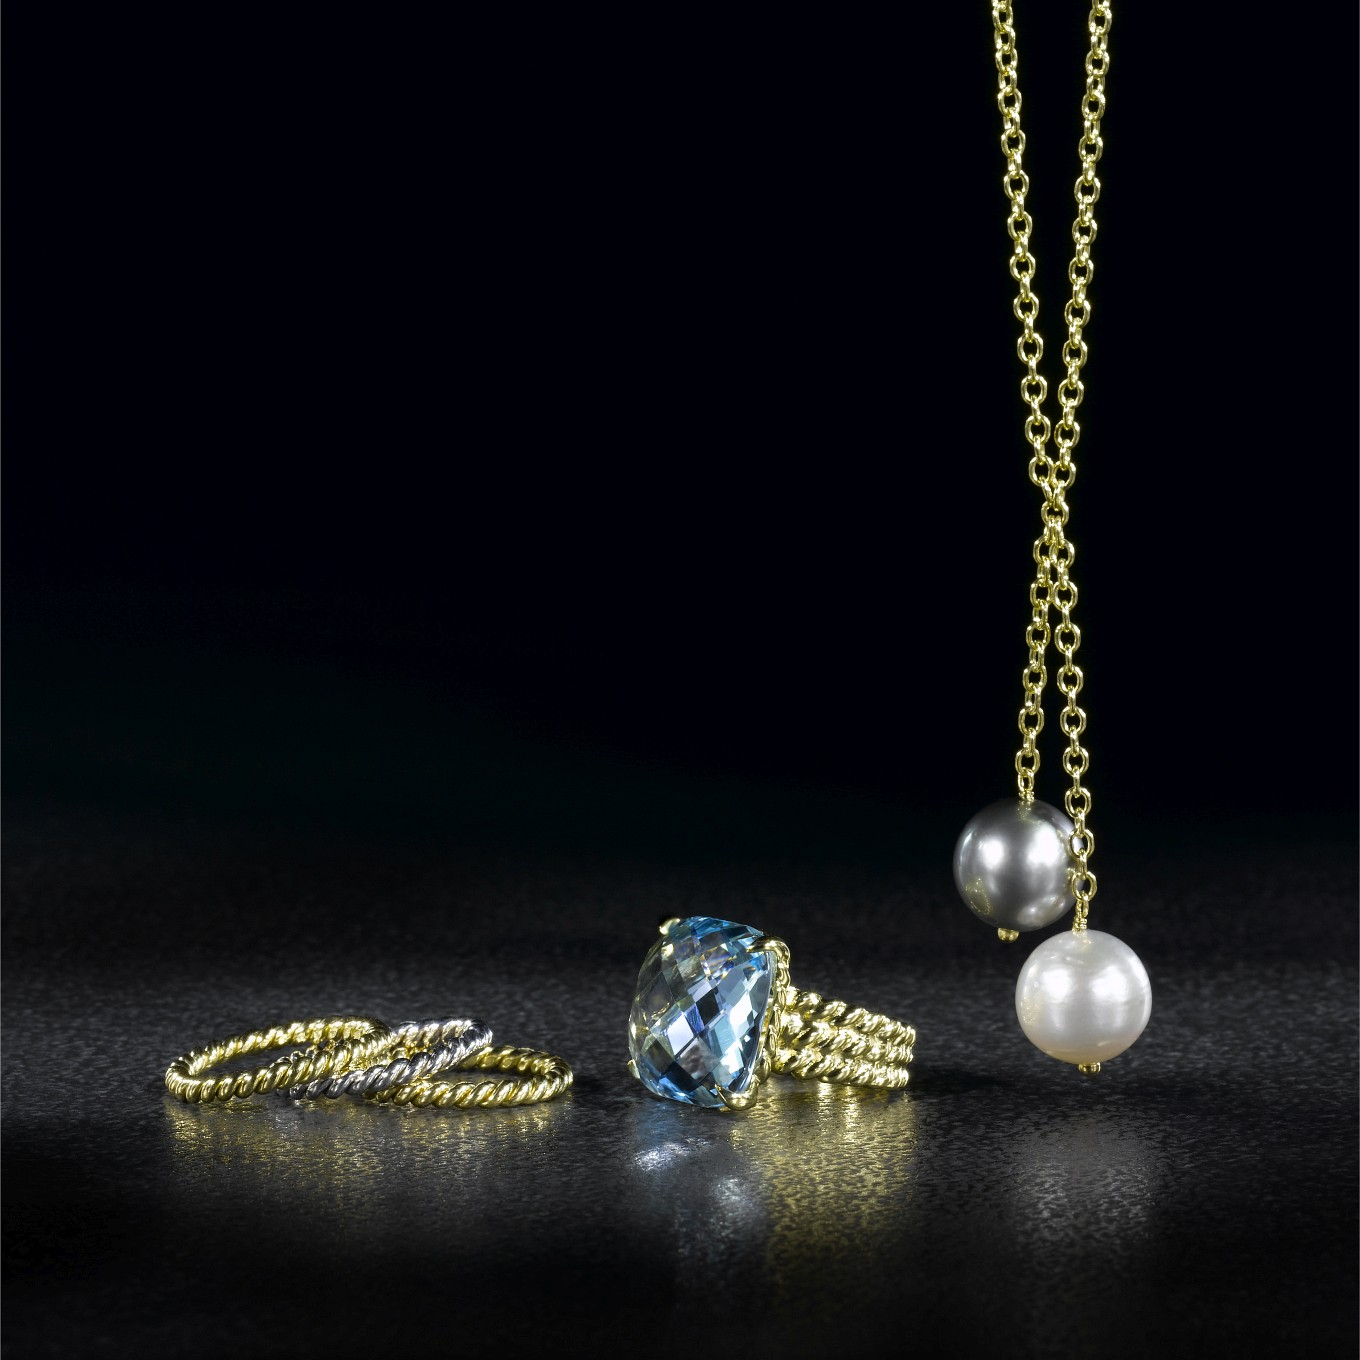 BRAIDED BANDS IN WHITE OR YELLOW GOLD. TOPAZ CHEQUERBOARD BRAID RING. TAHITIAN & WHITE SOUTHSEA PEARL DROP NECKLACE WITH HANDMADE CHAIN